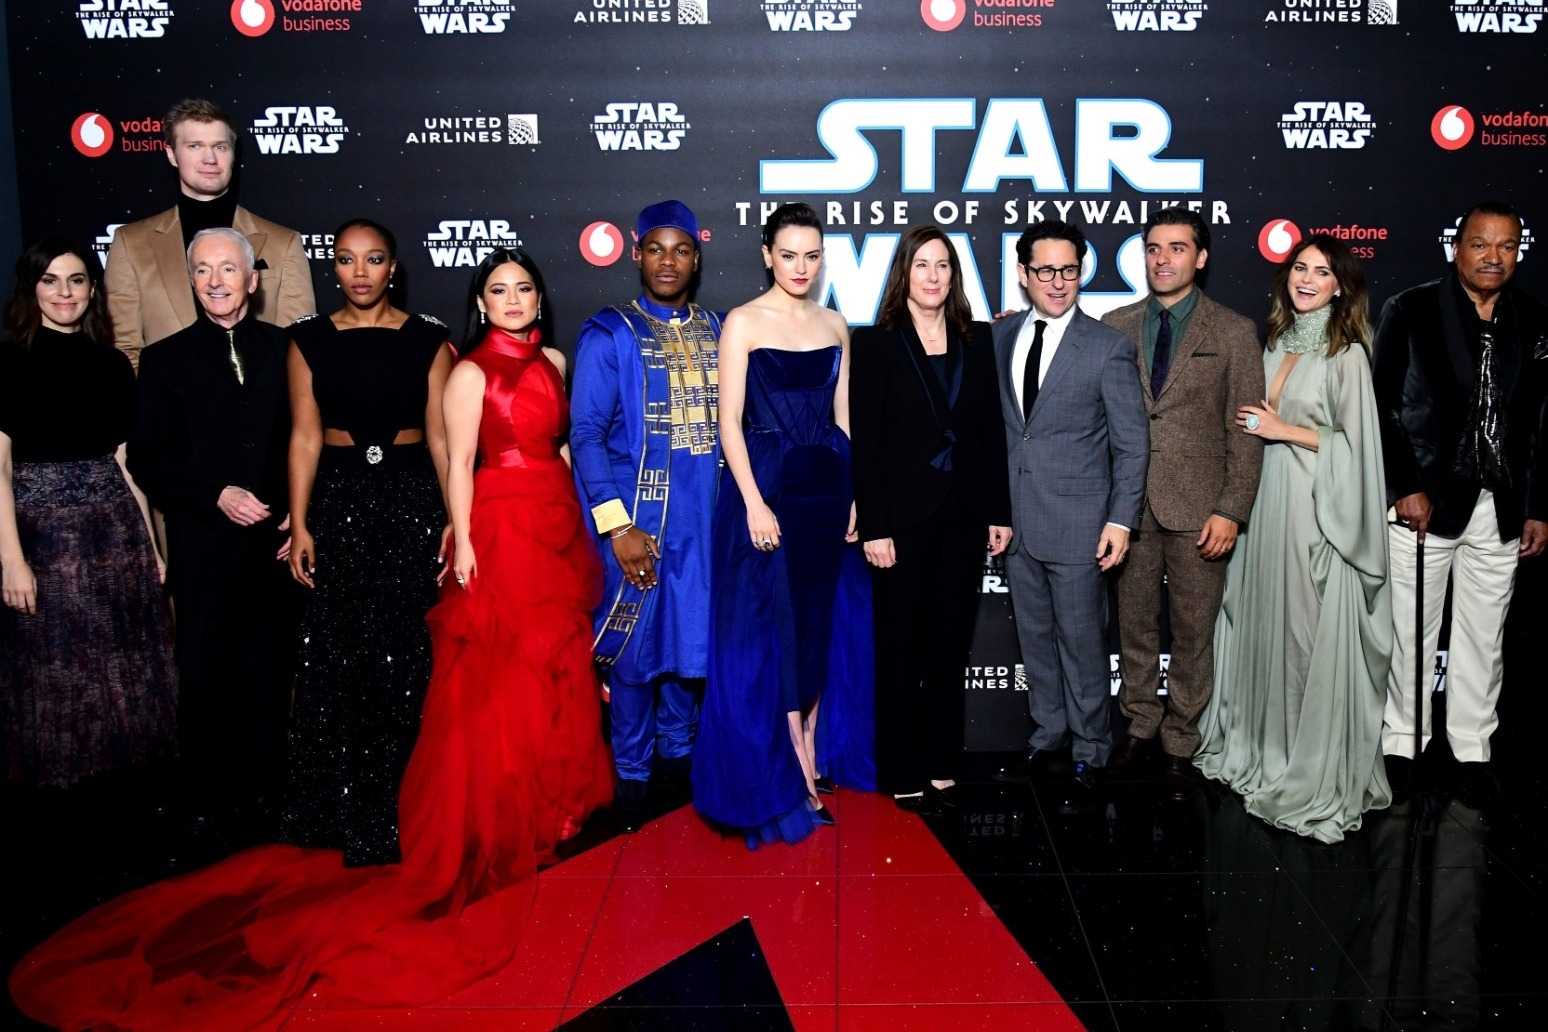 LATEST STAR WARS FILM CONTINUES STRONG START AT THE BOX OFFICE